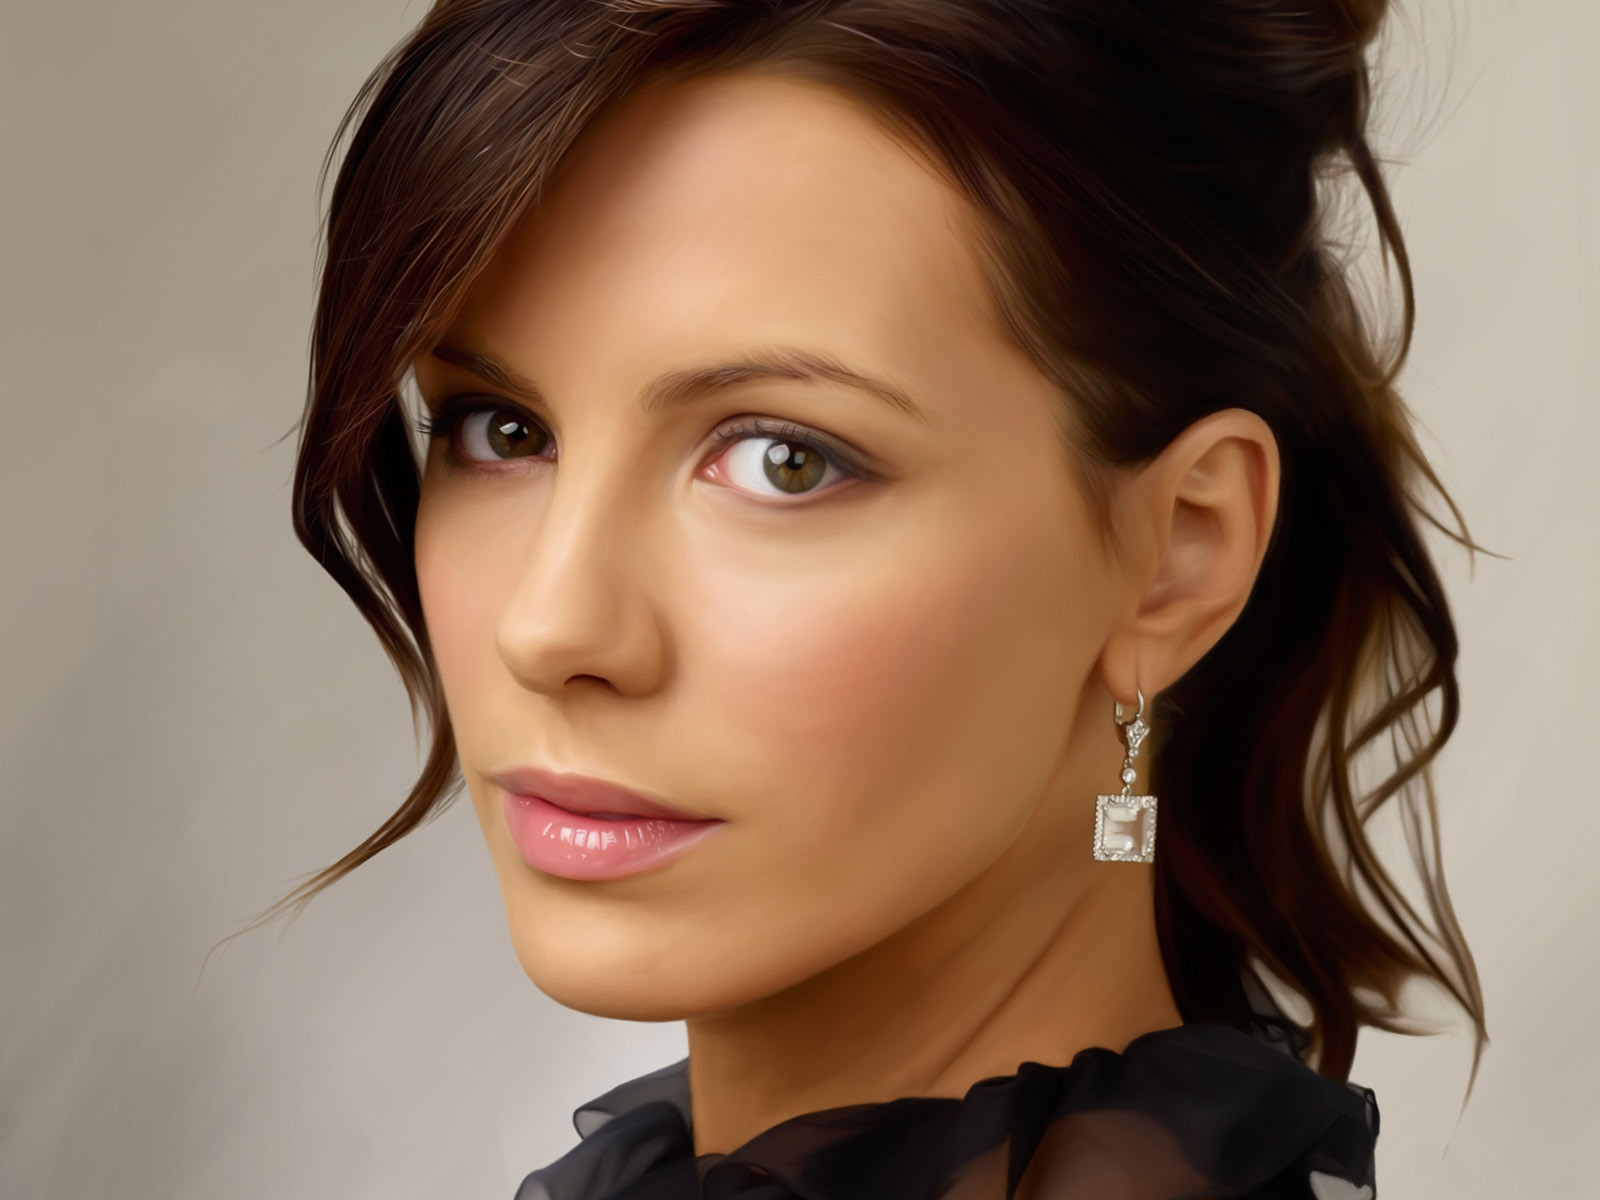 kate-beckinsale-hd-desktop